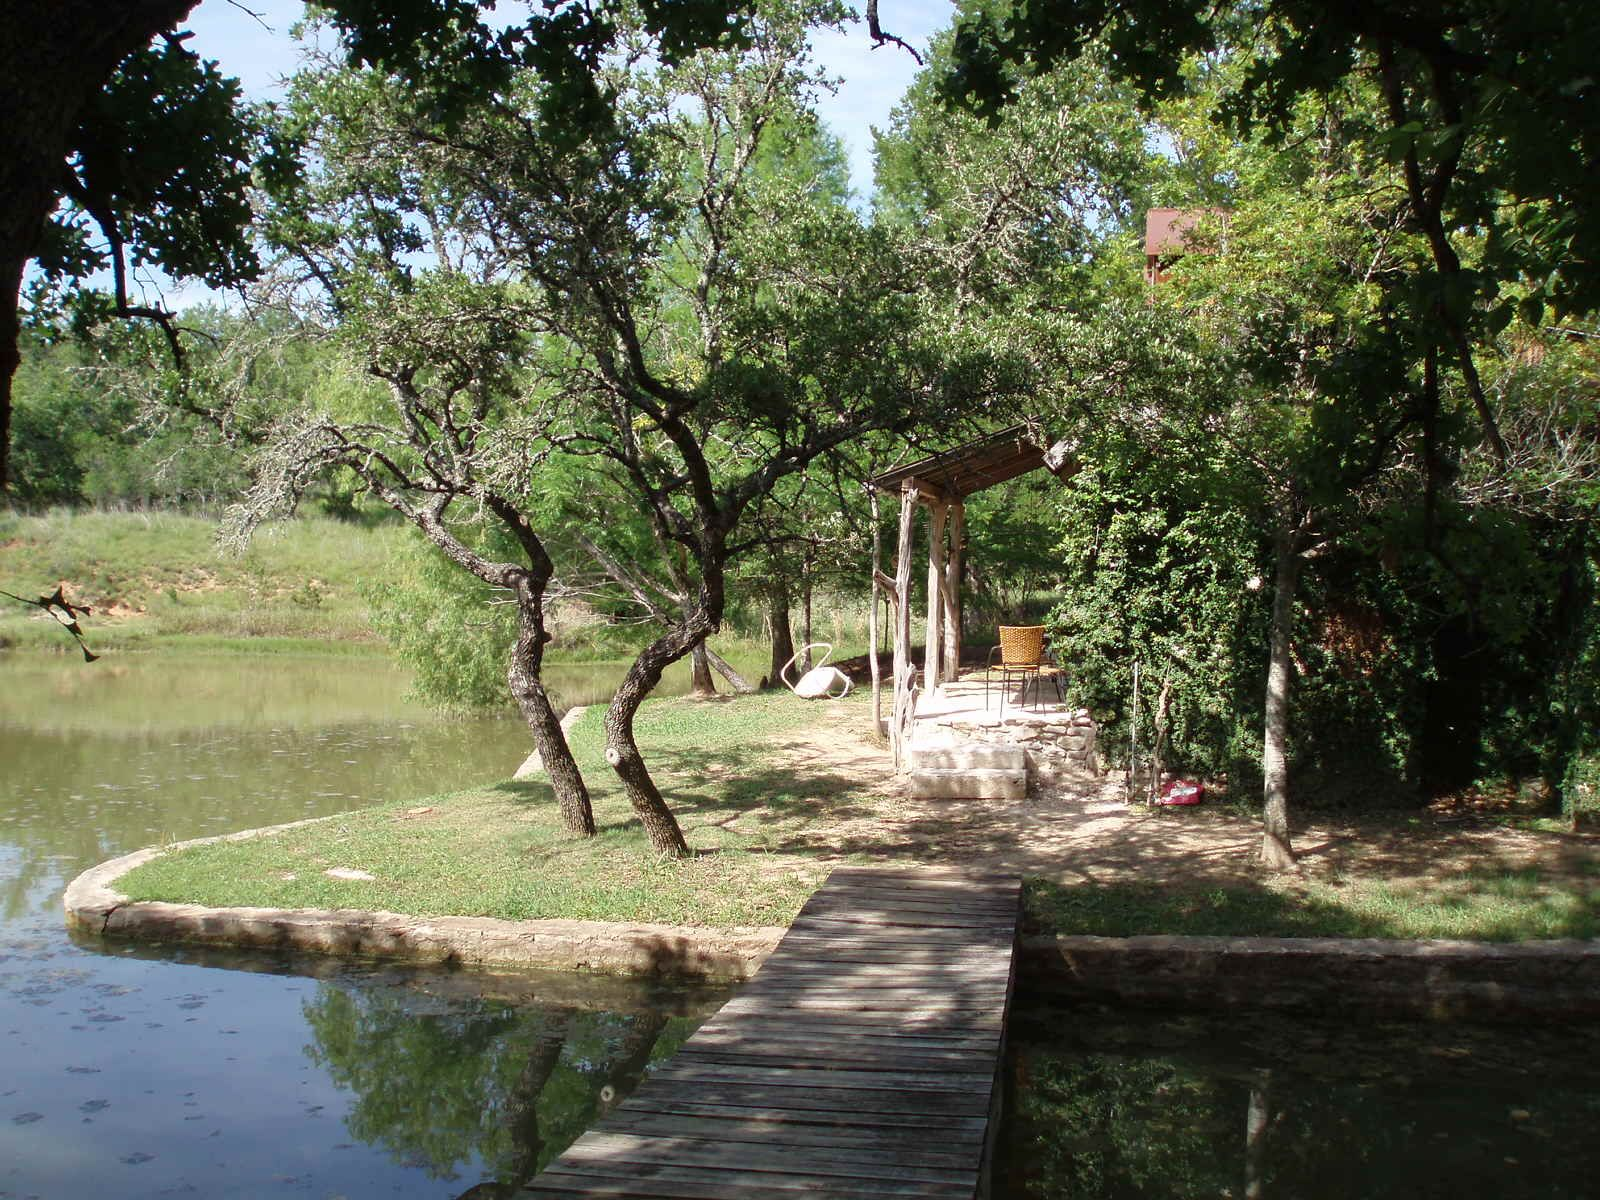 lodging vacation homes home asp texas i rentals lbj on rental community tx christopher in kingsland lake cabins